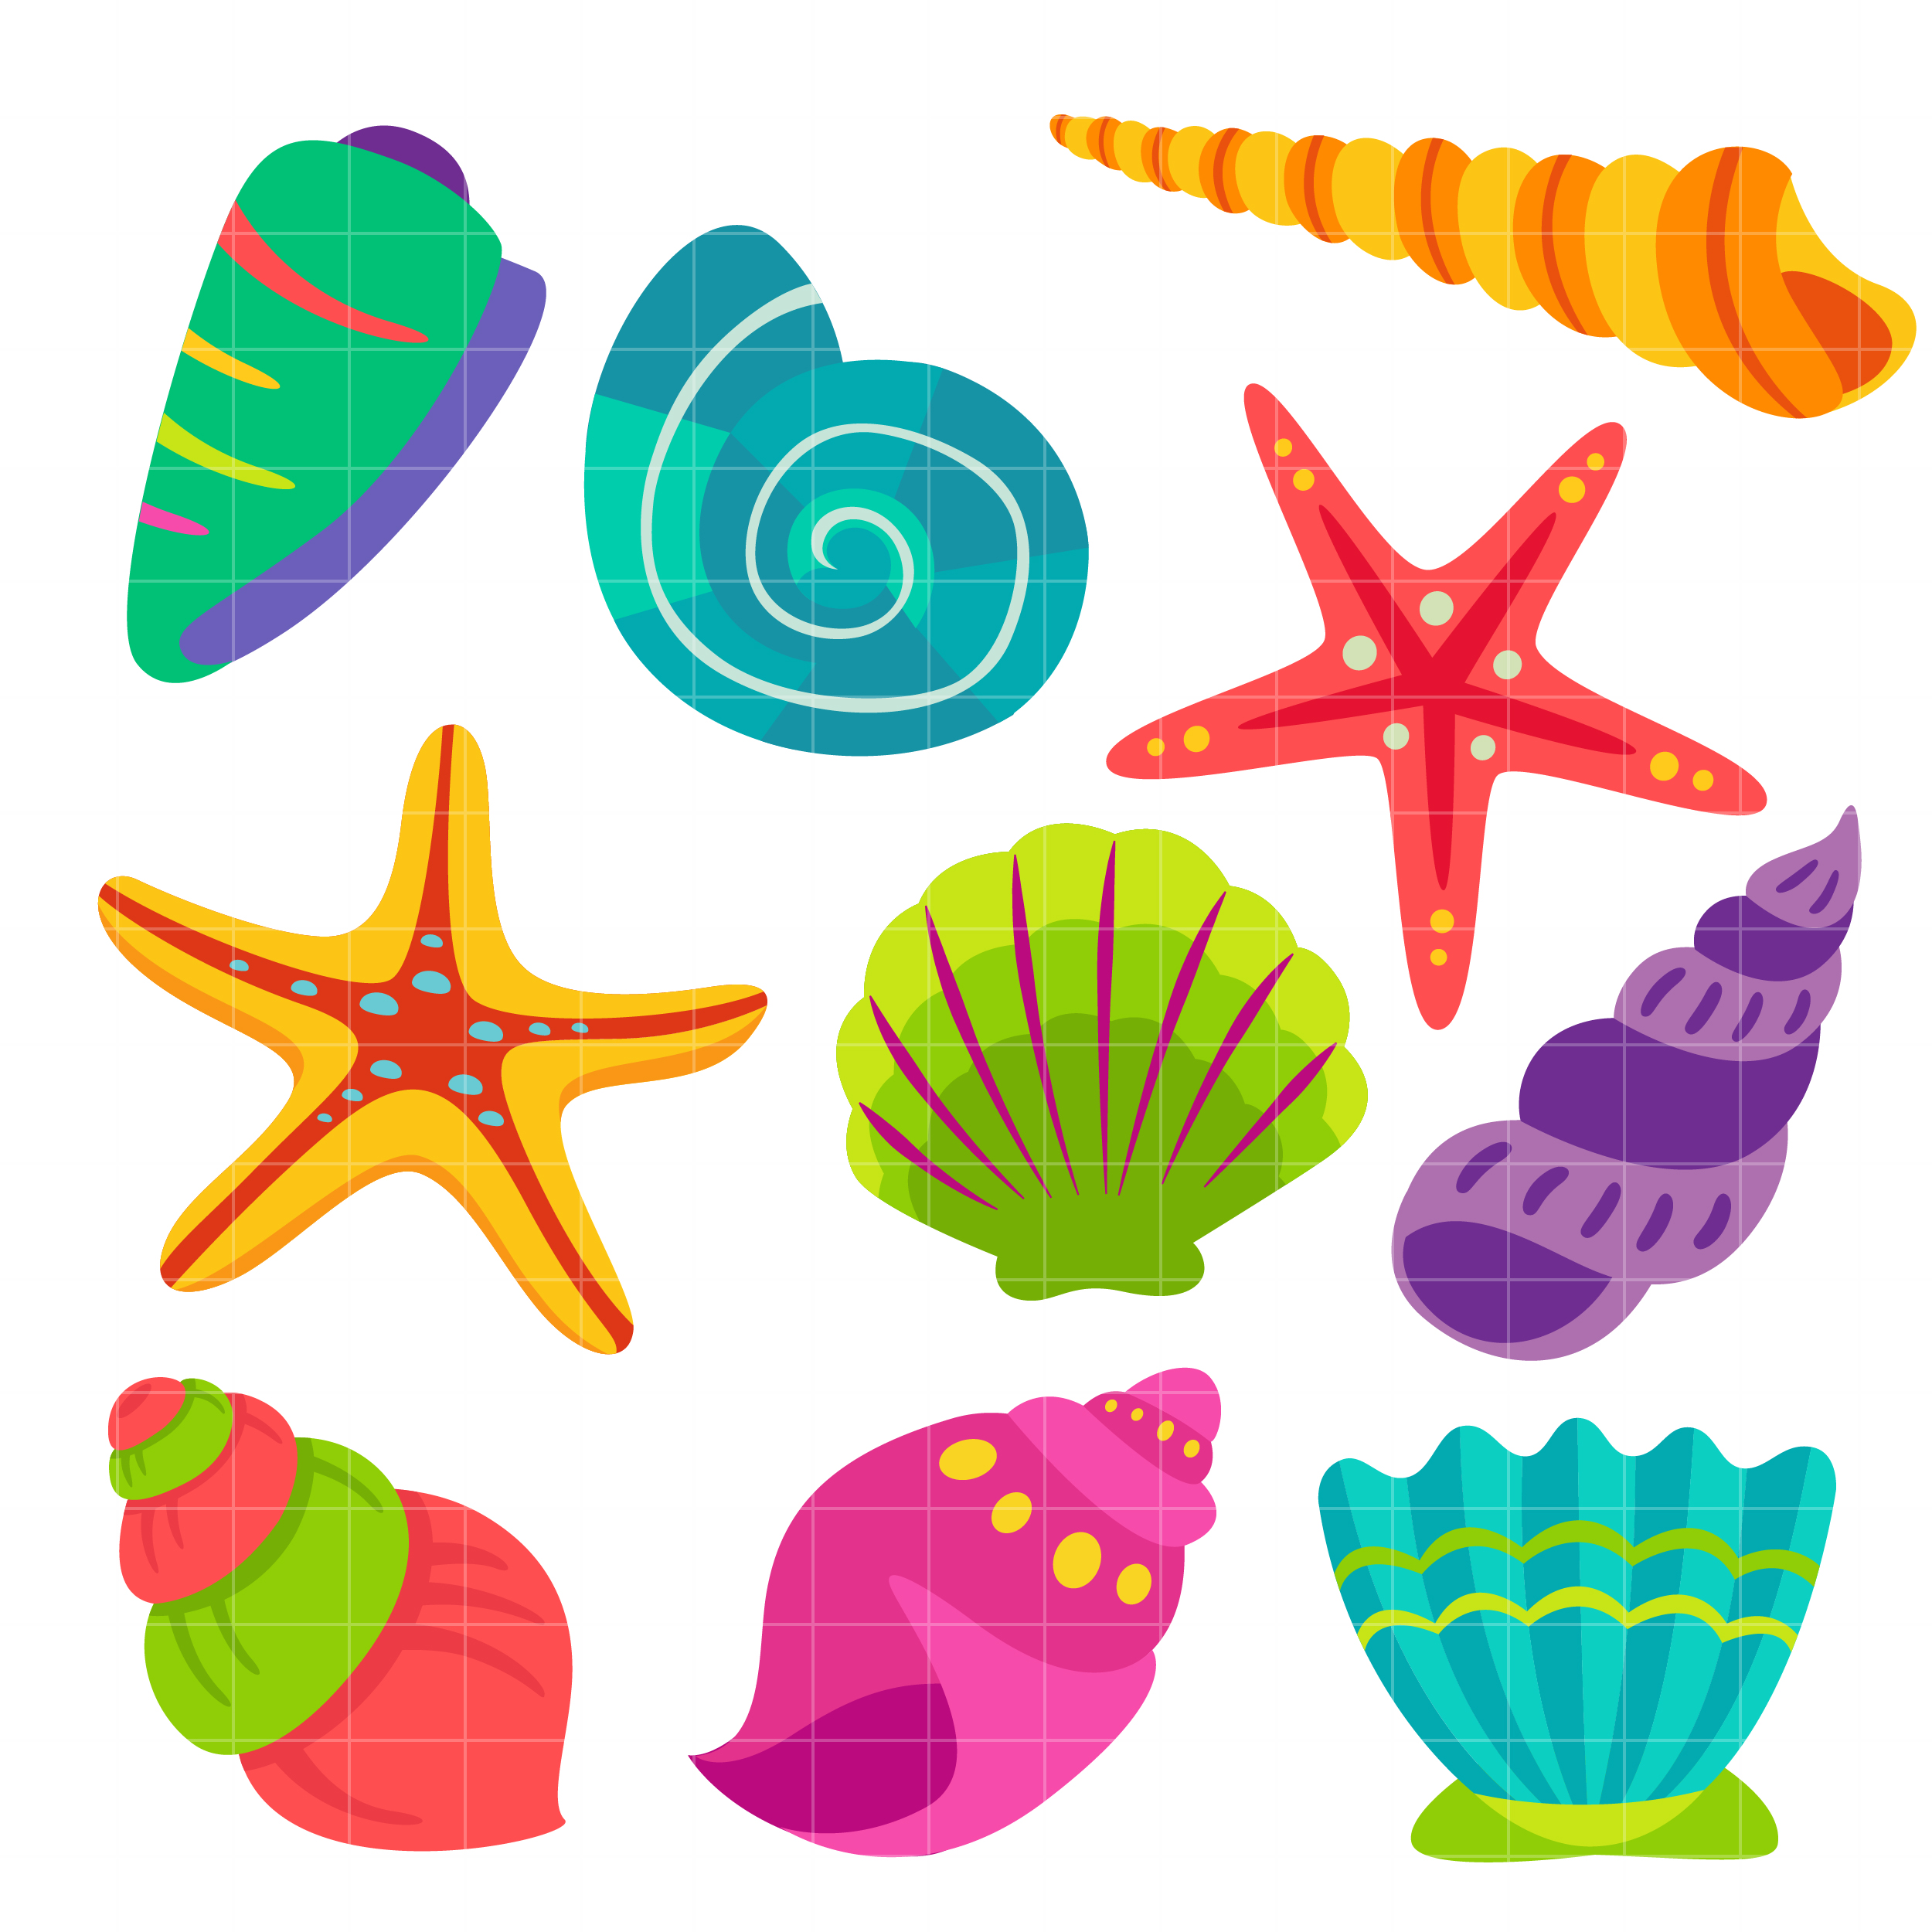 Sea shells clipart 3 » Clipart Station.